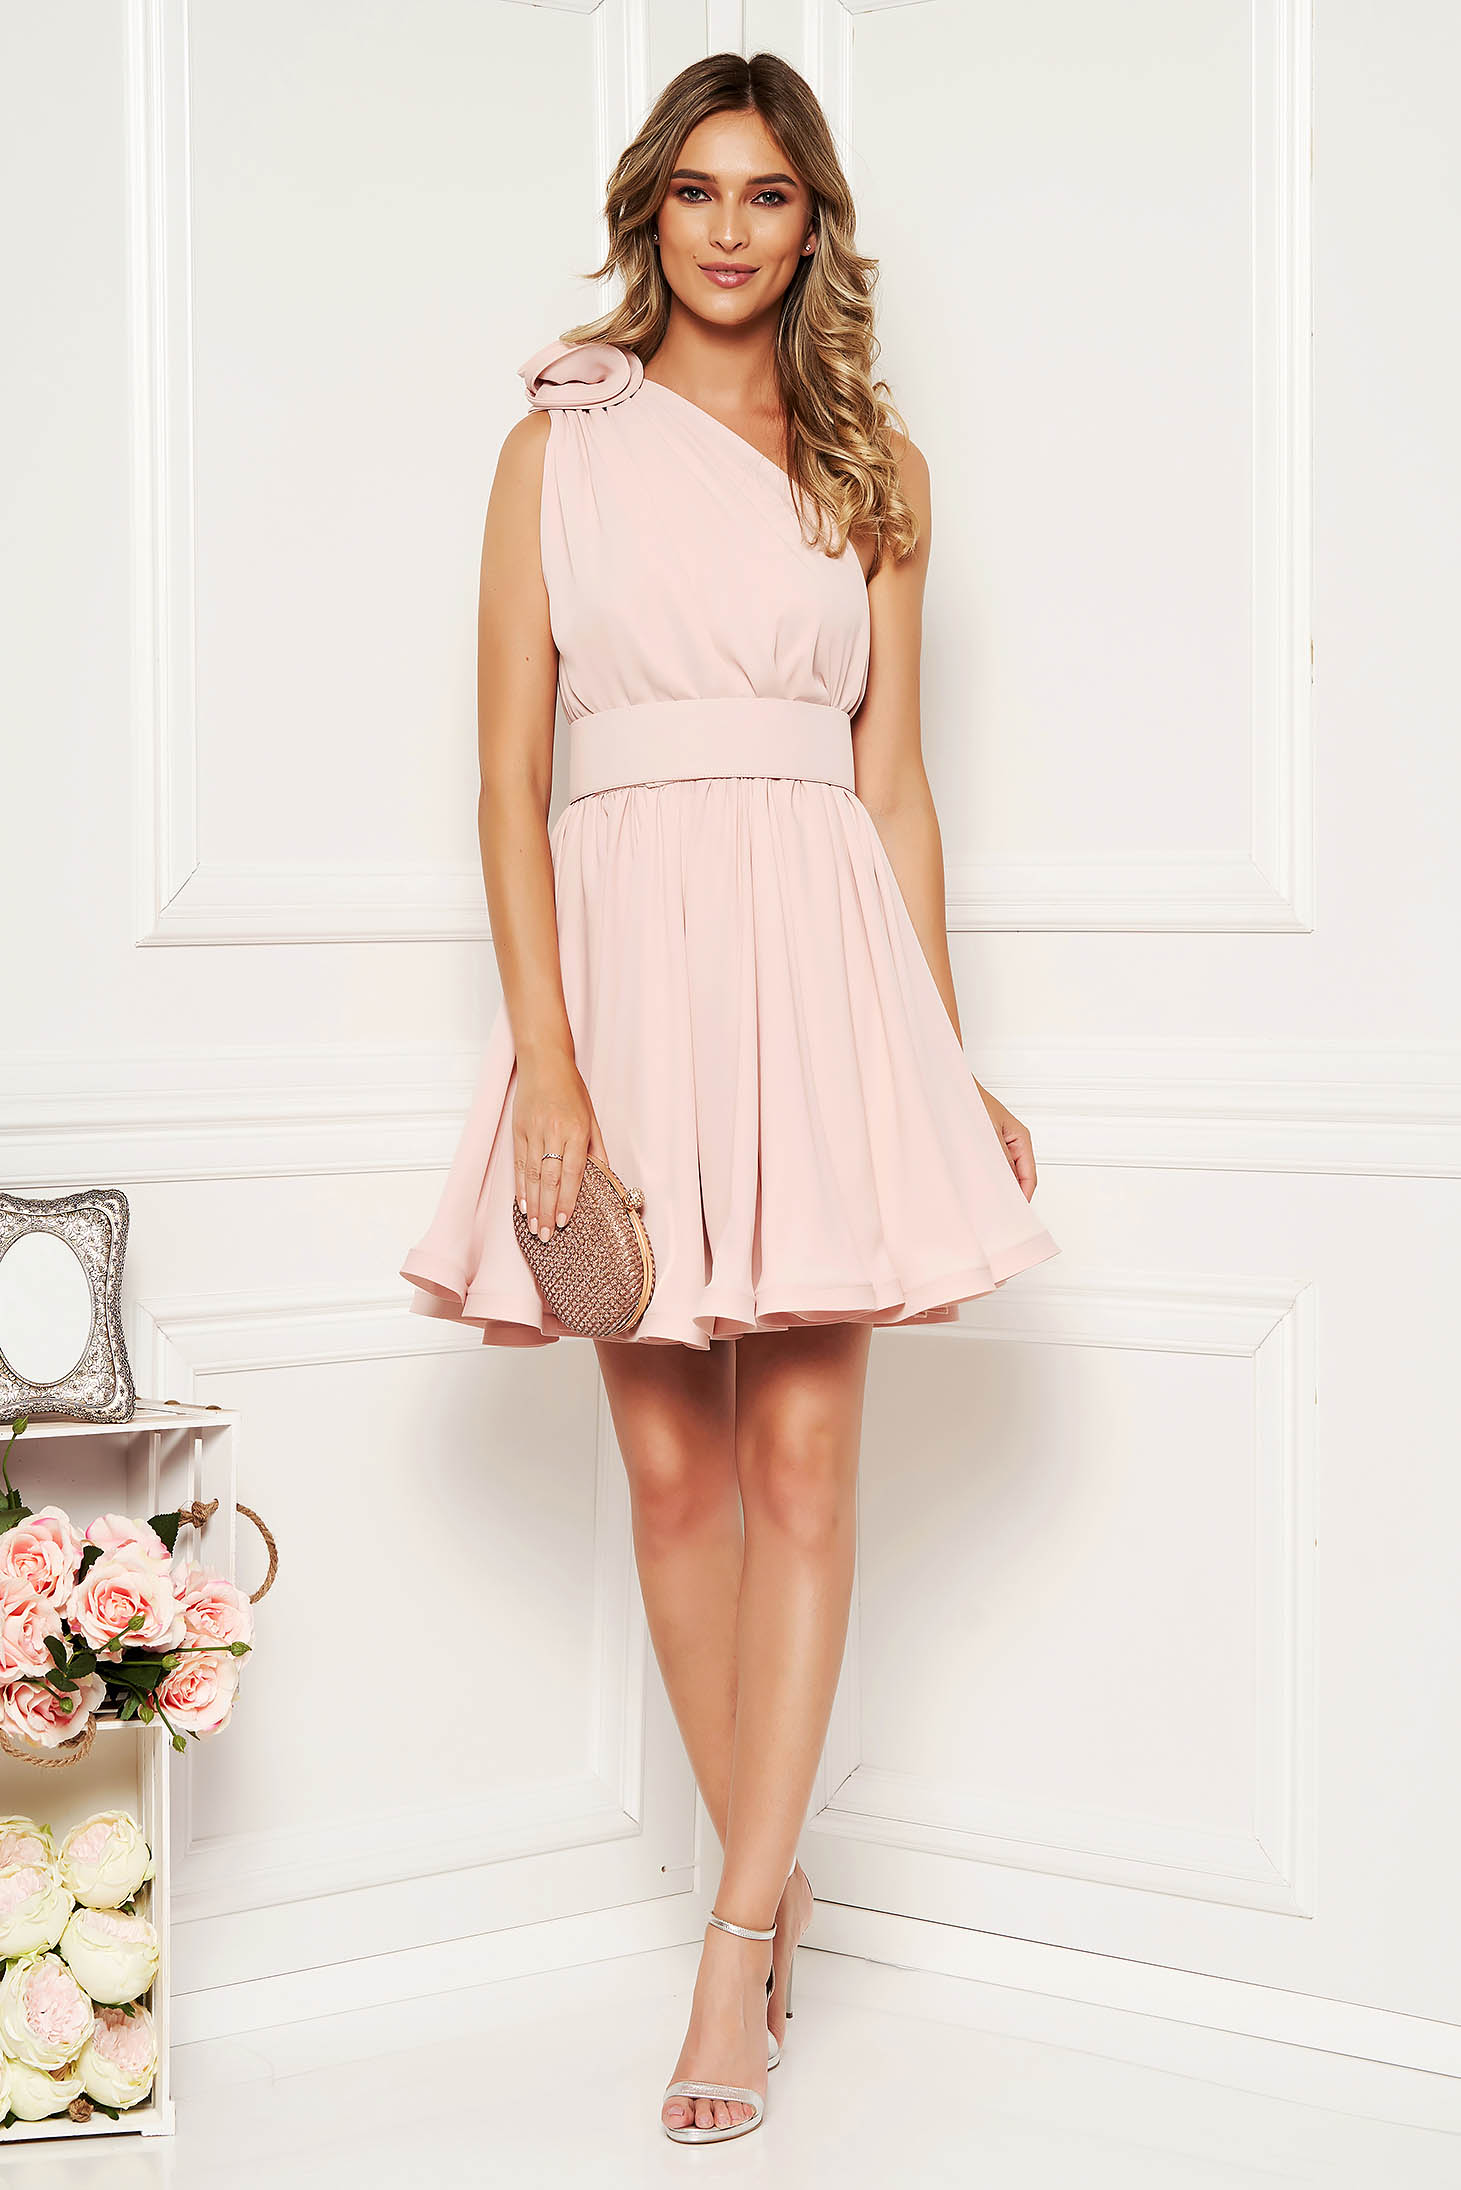 Ana Radu luxurious cream dress from veil fabric with inside lining cloche accessorized with tied waistband one shoulder